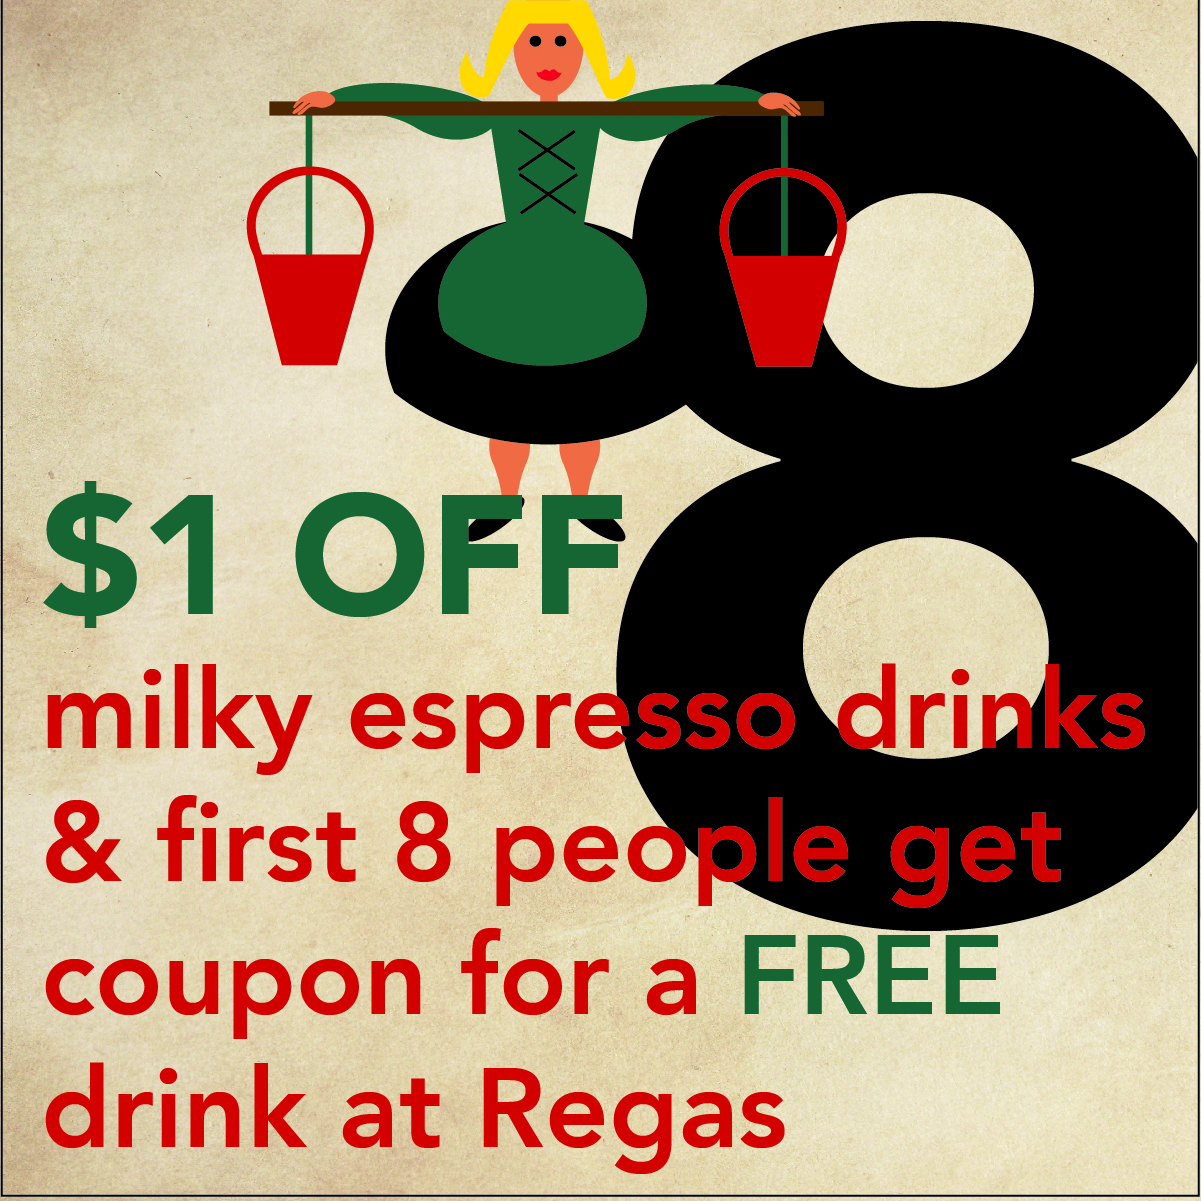 DEC. 17  - 8 MAIDS A MILKING  Get $1 OFF milky espresso drinks at  Vienna Coffee House  and the first 8 people also get a coupon for a FREE drink at  Vienna Coffee at Regas .